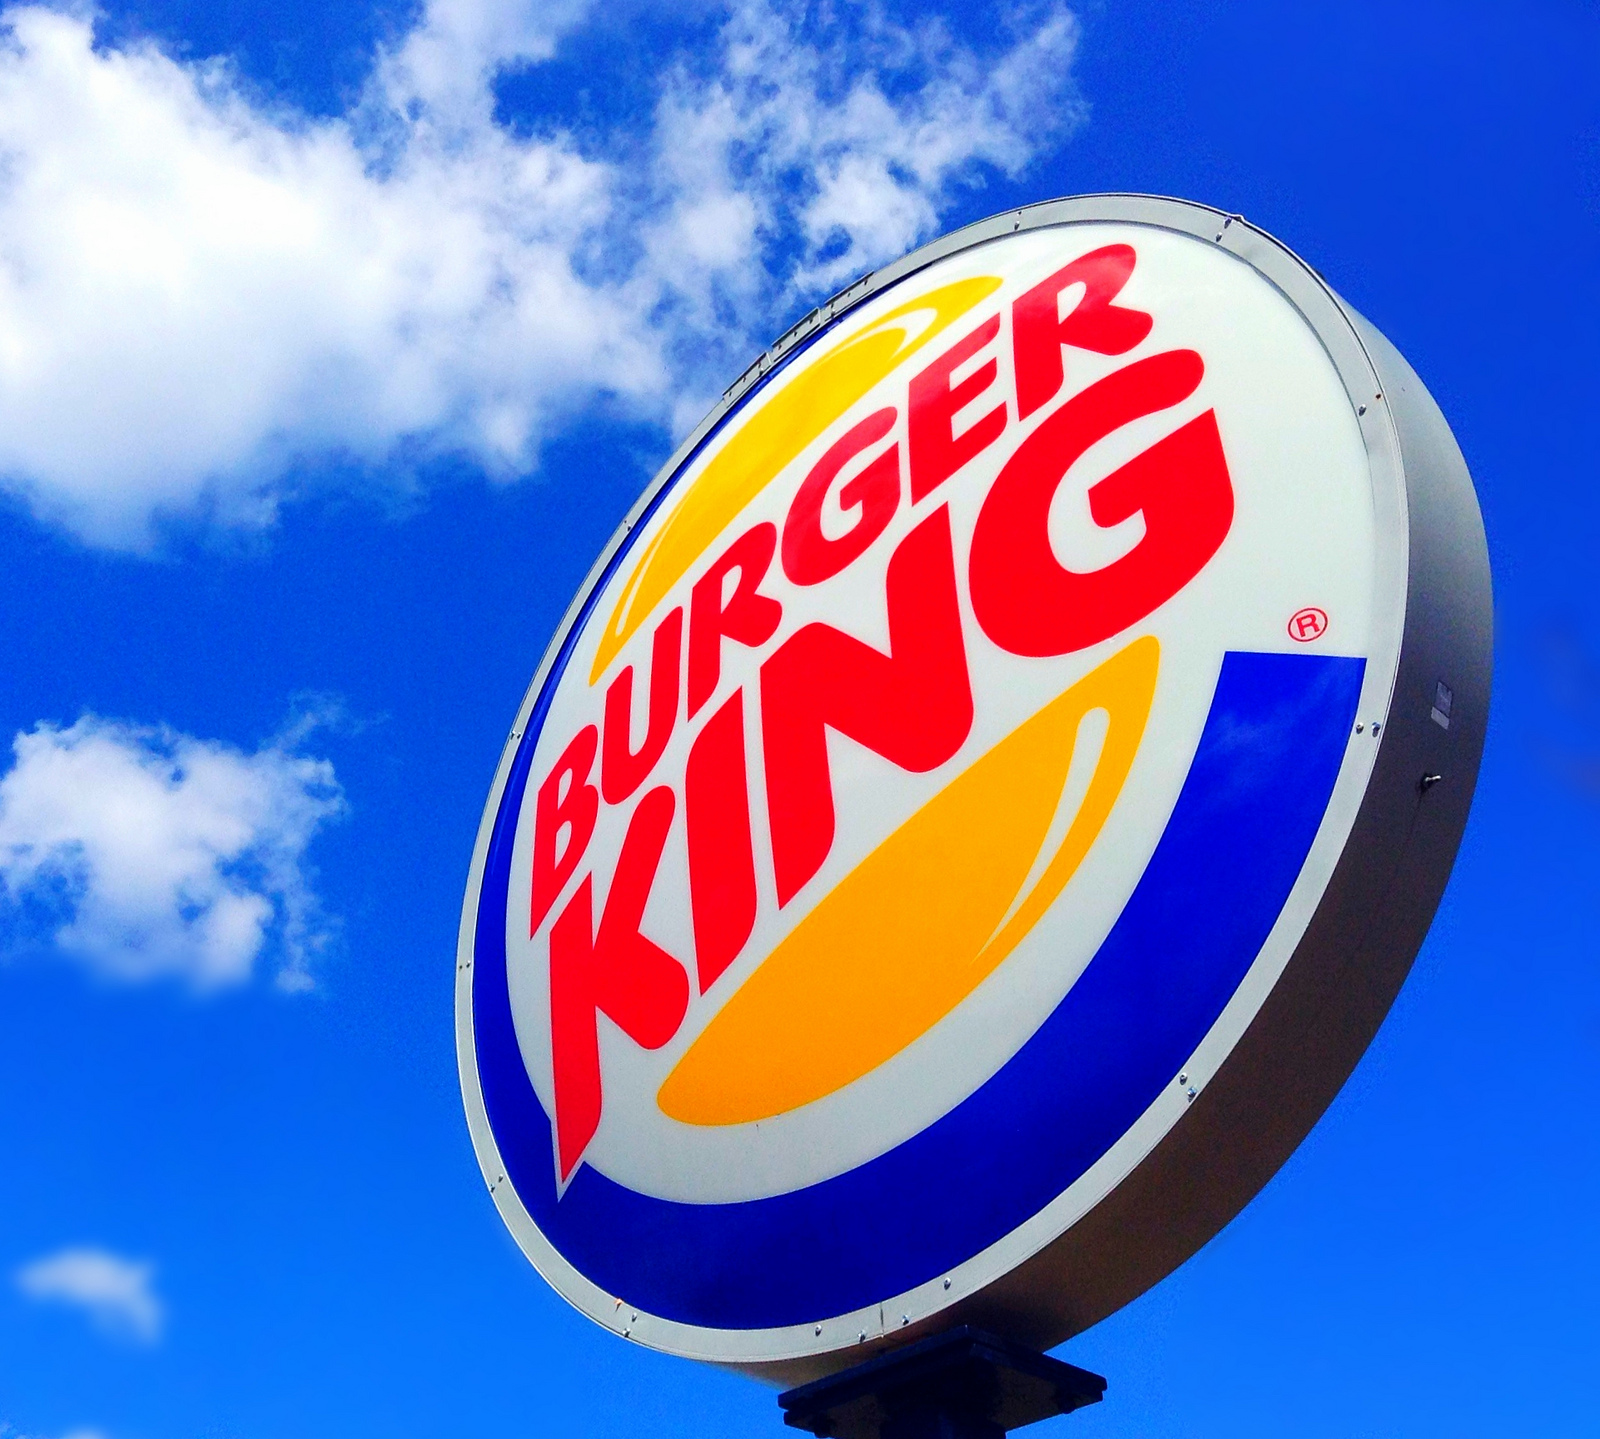 Burger King Manager Facing Assault Charge For Allegedly Throwing Sauce At Customer